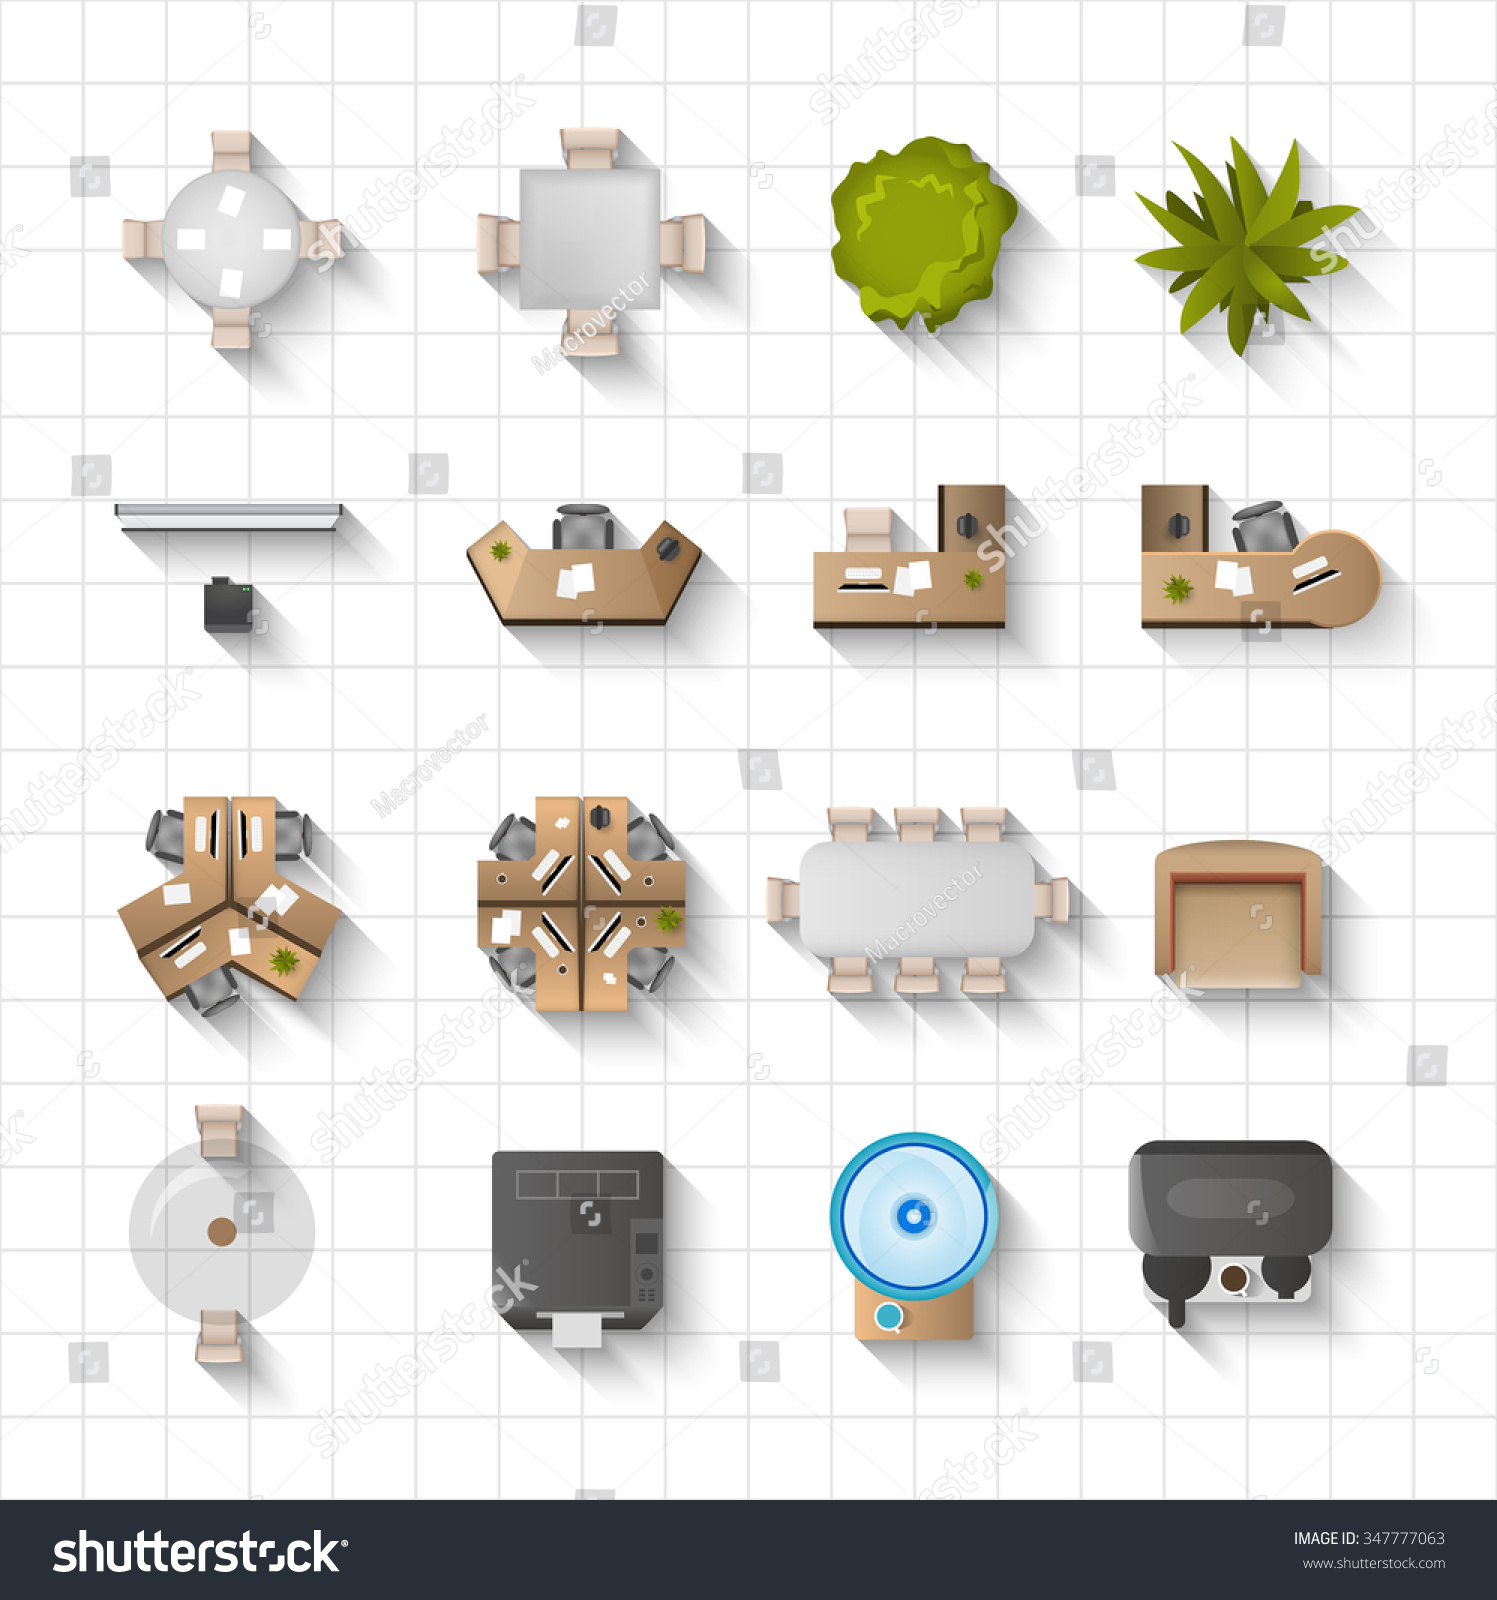 Furniture top view images - Office Interior Furniture Icons Top View Set Isolated Vector Illustration